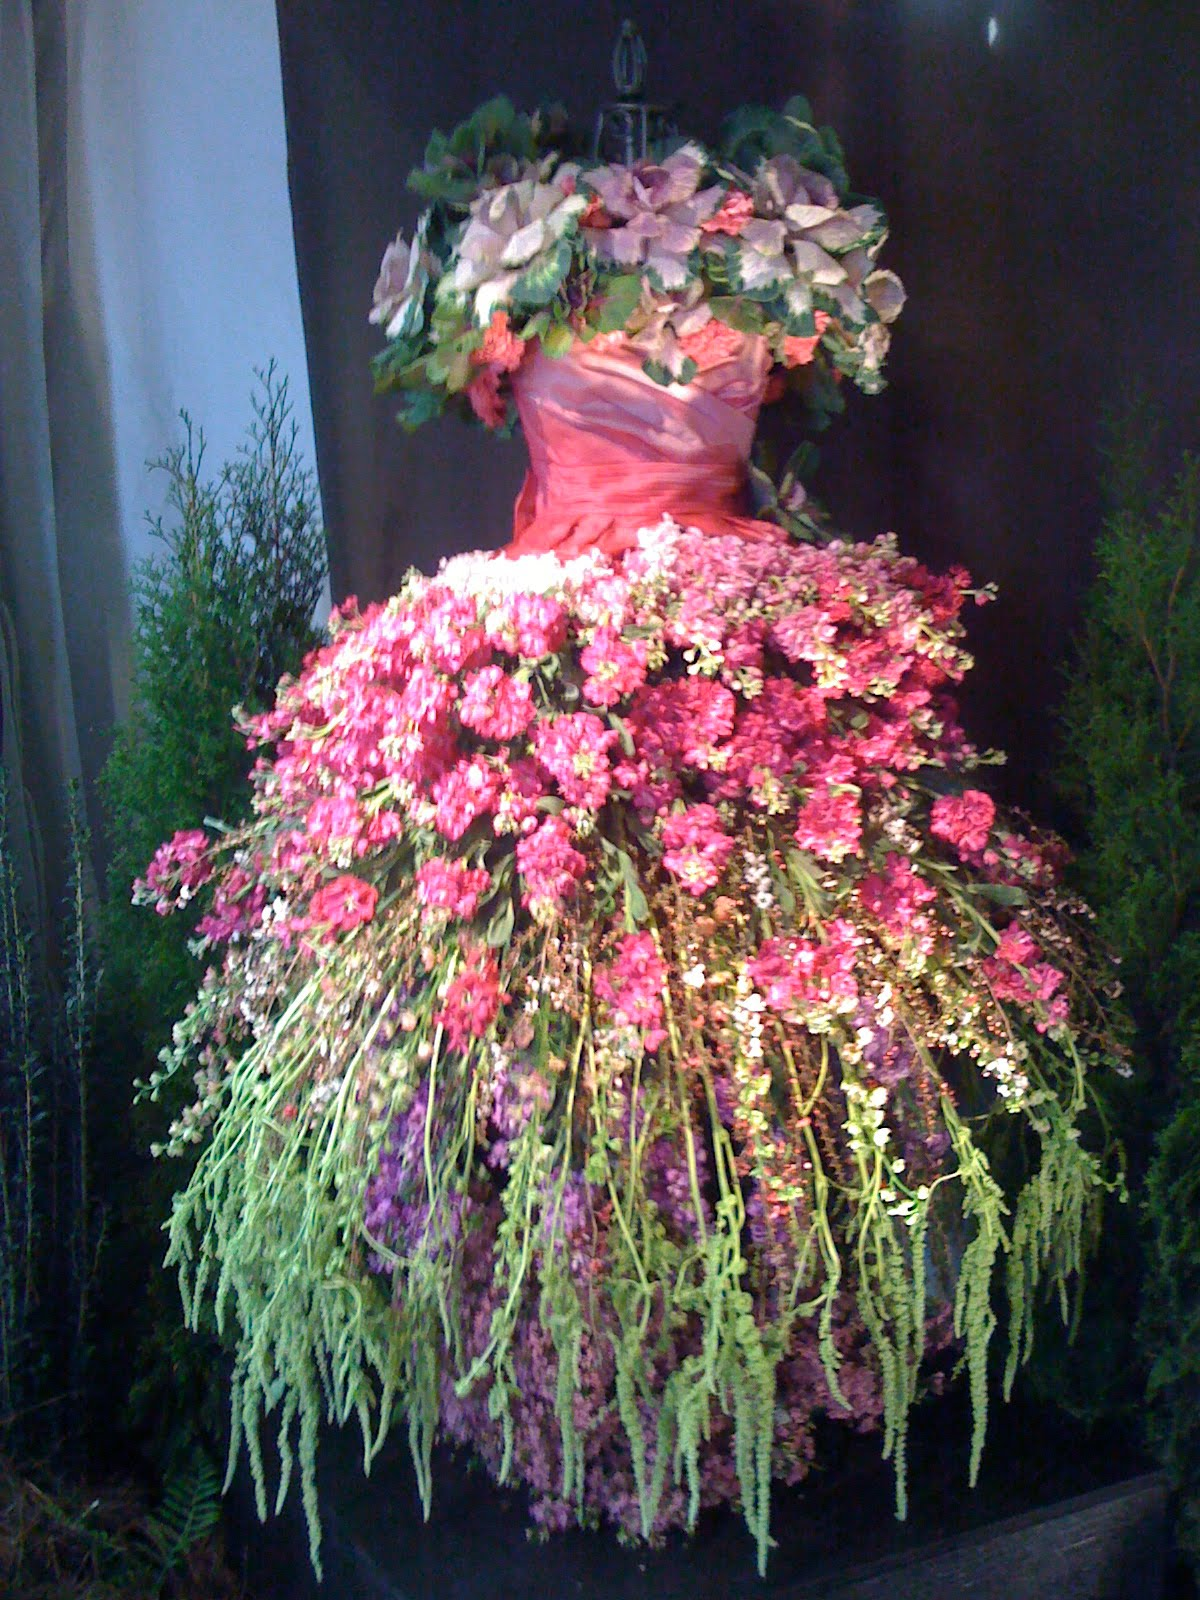 Christen good day sunshine festival of flowers for Wedding dress made of flowers